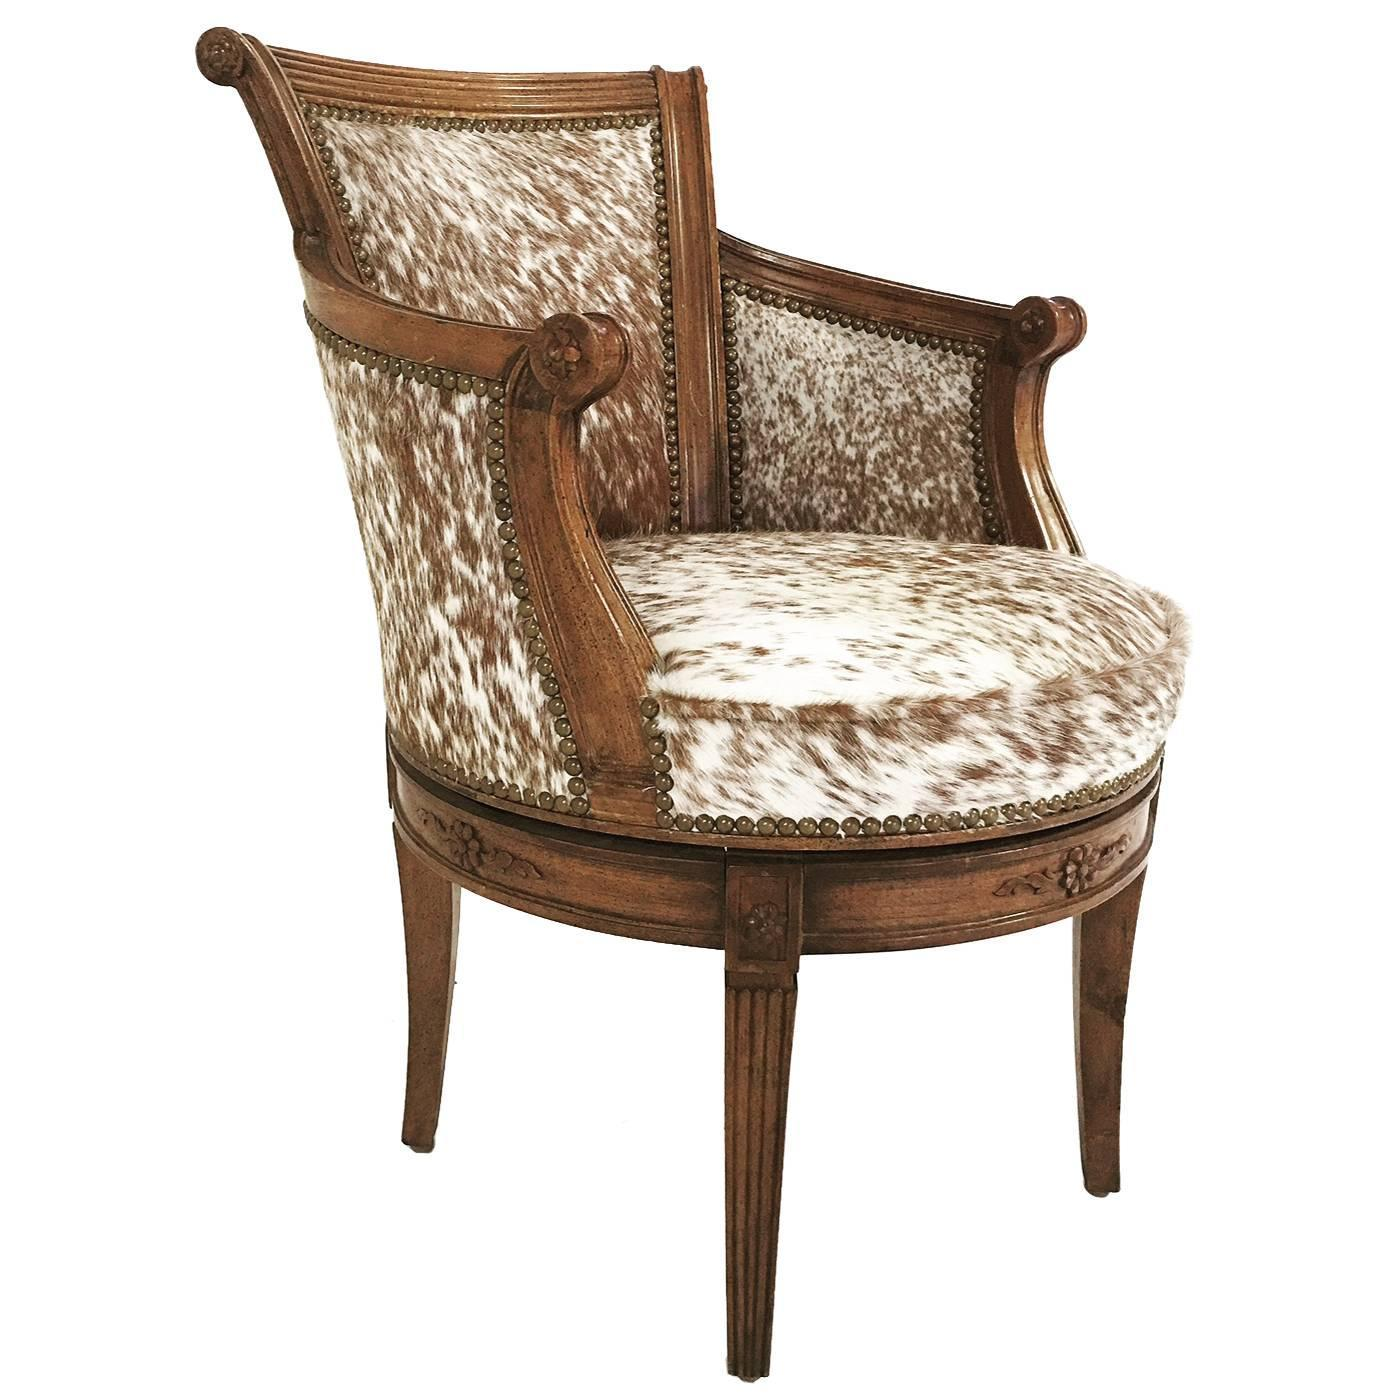 cowhide chairs nz linens and chair covers for weddings vintage swivel in brown white speckled brazilian